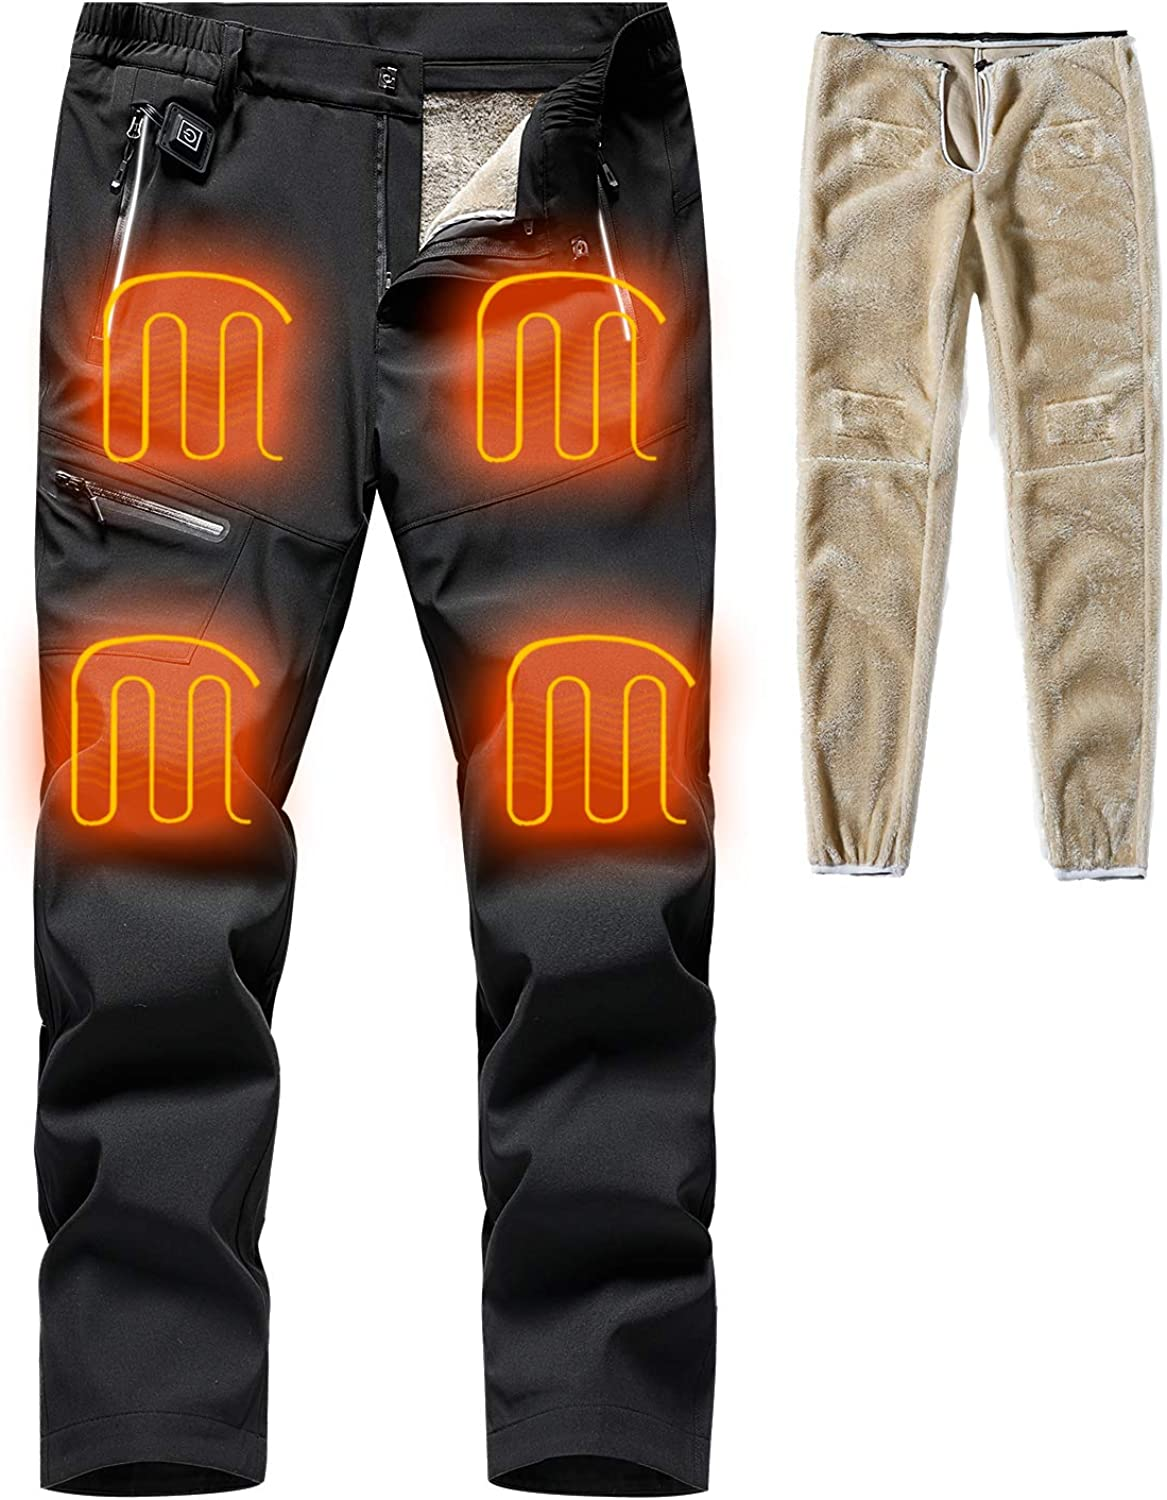 MOERDENG Men's Heated Ski Pants Insulated Washable Heating Warm Trousers Thermal Bottoms